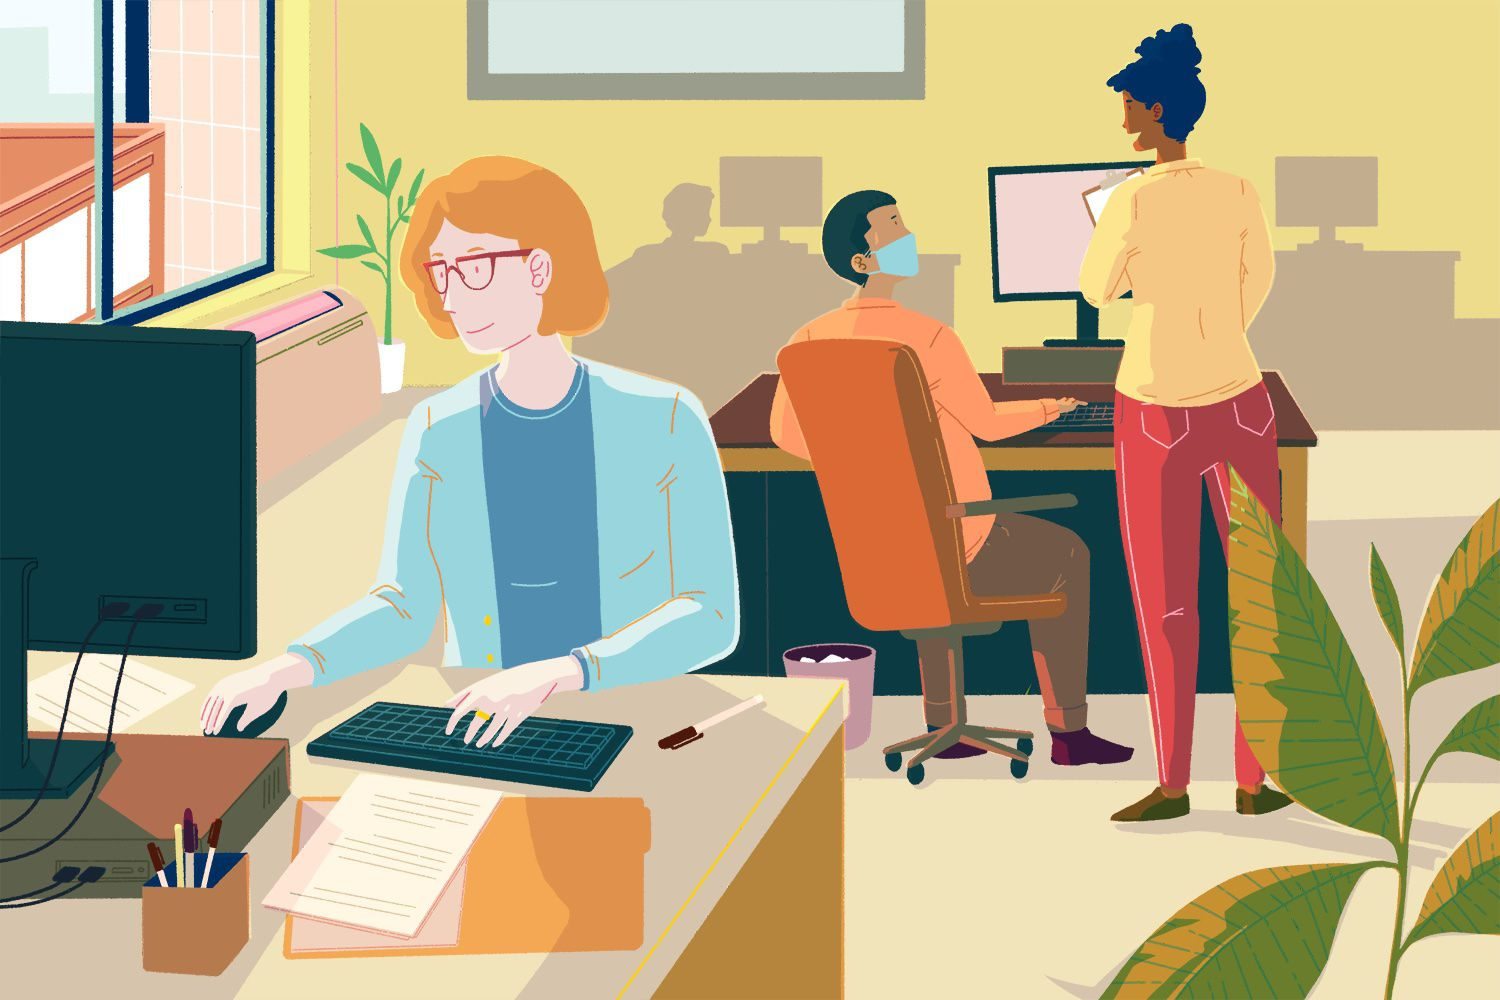 drawing of people in an office working at their computers